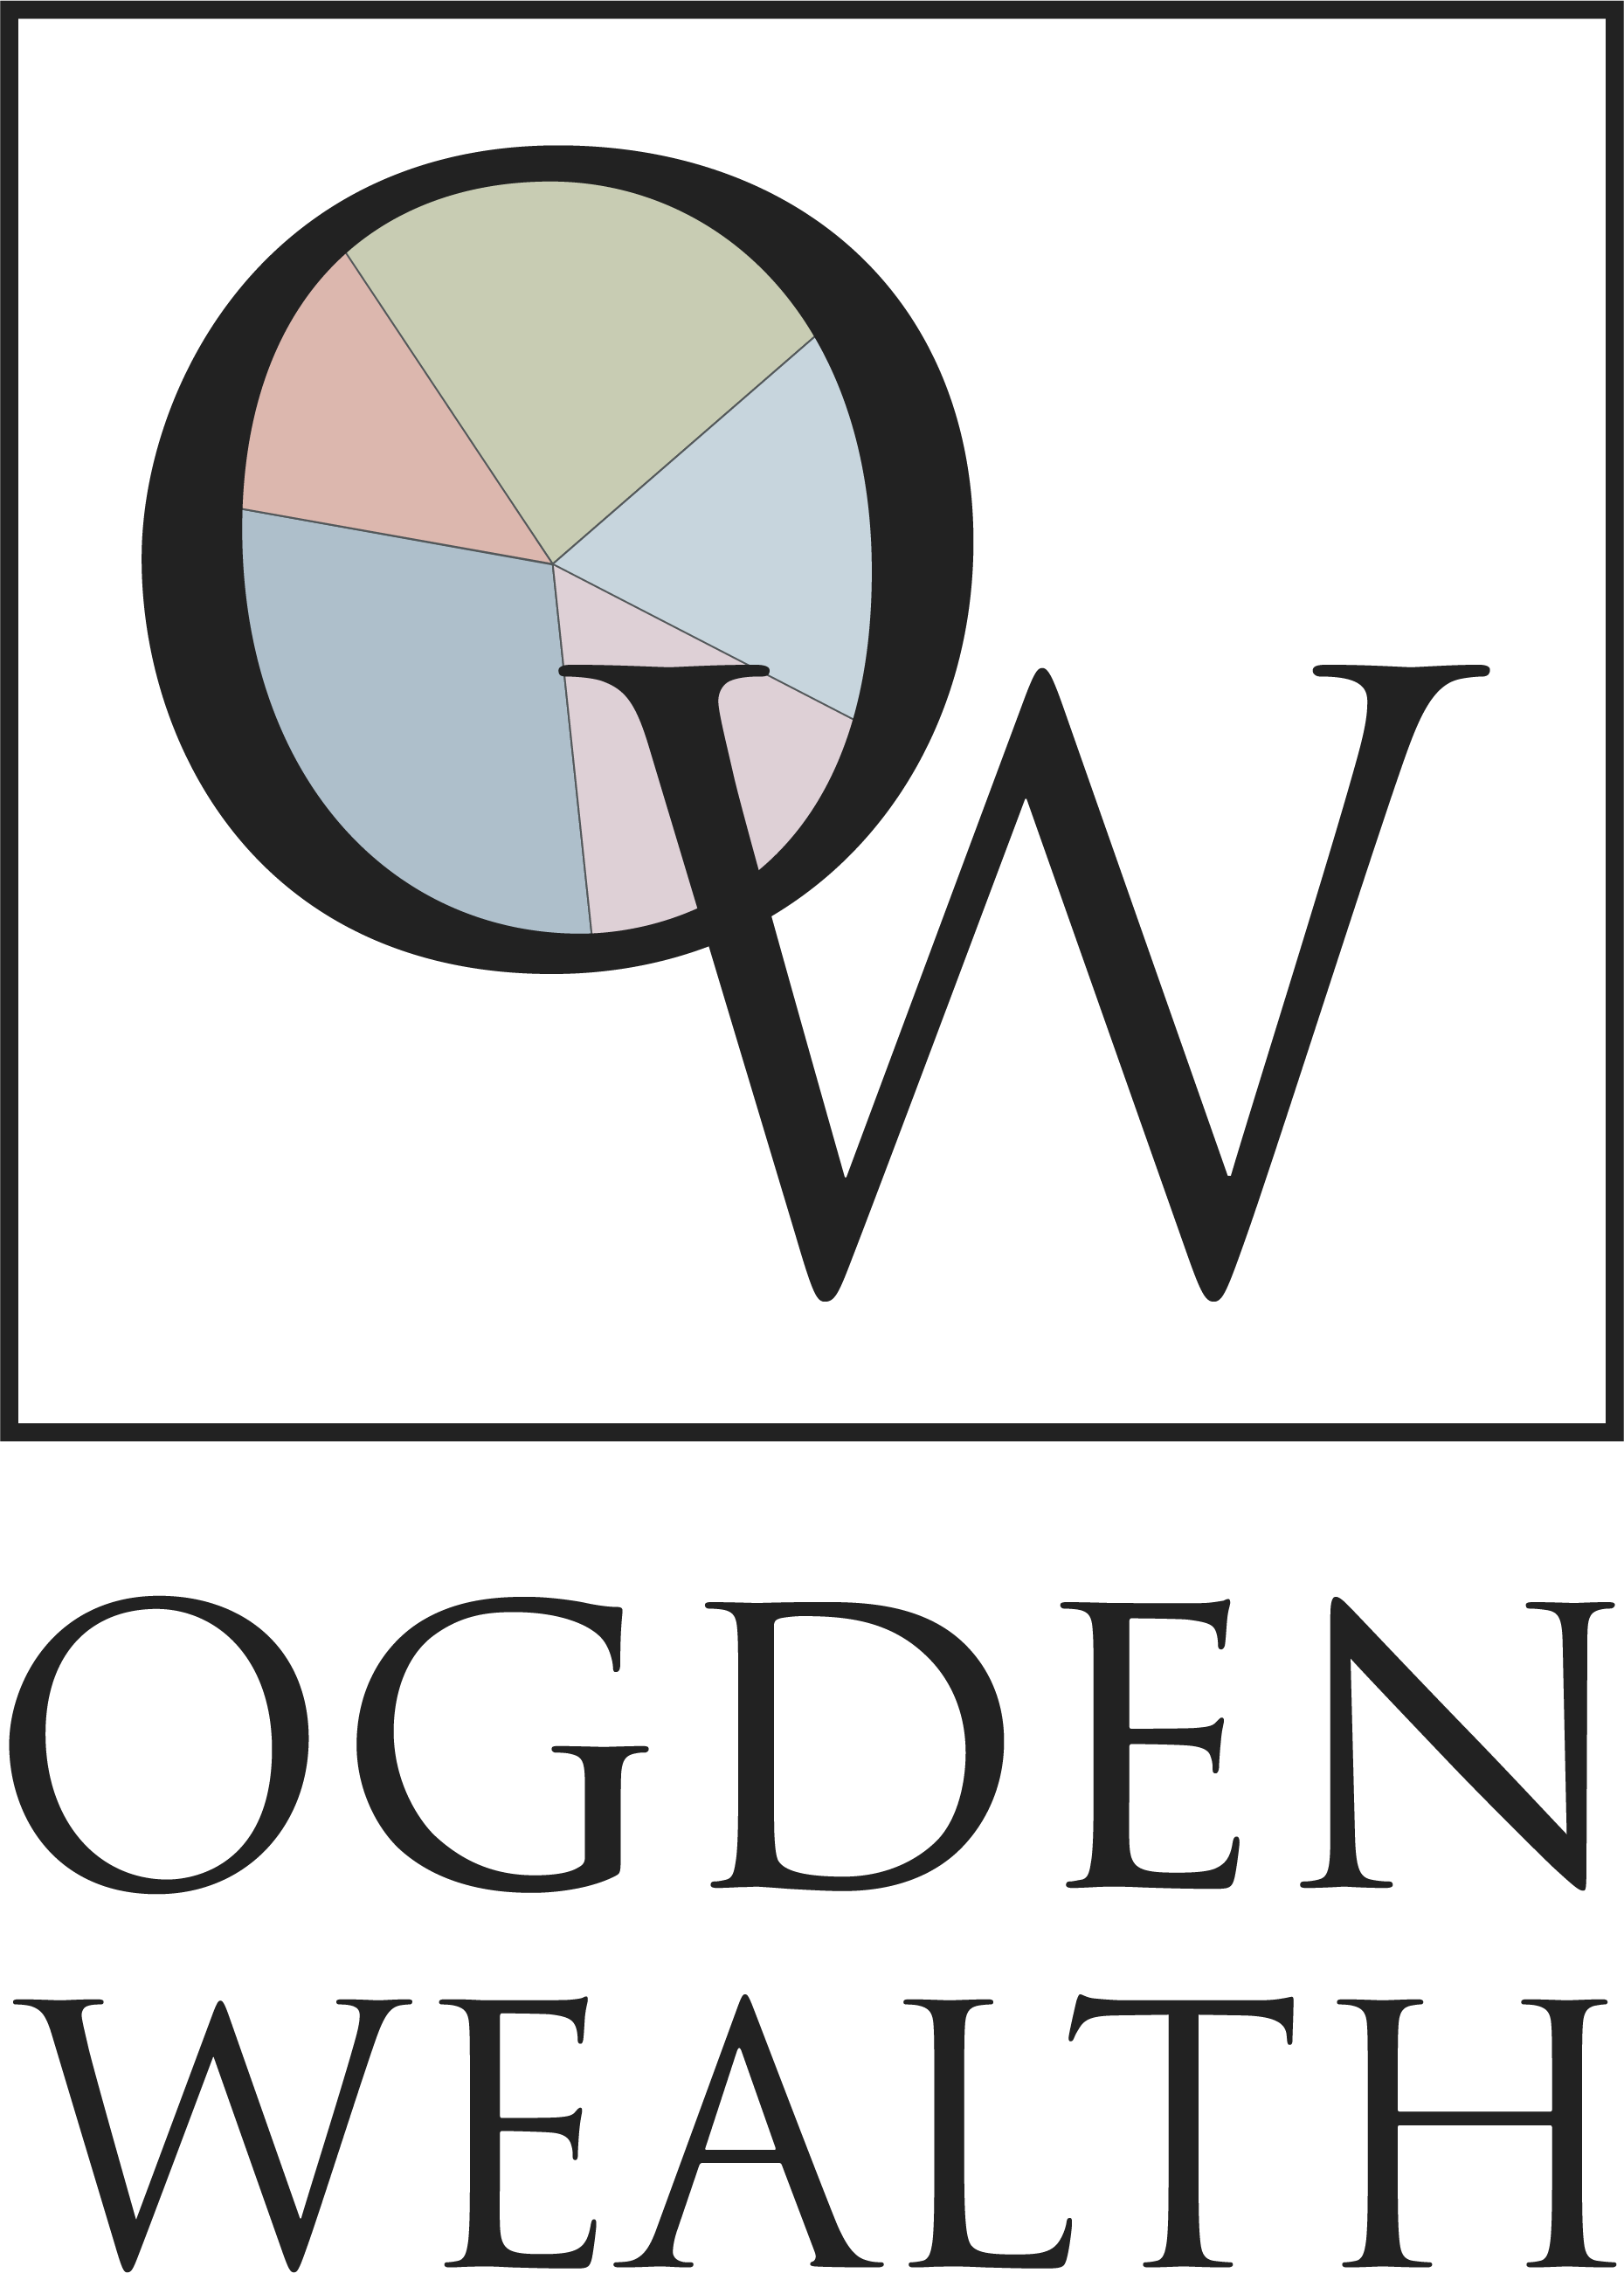 Ogden Wealth LLC